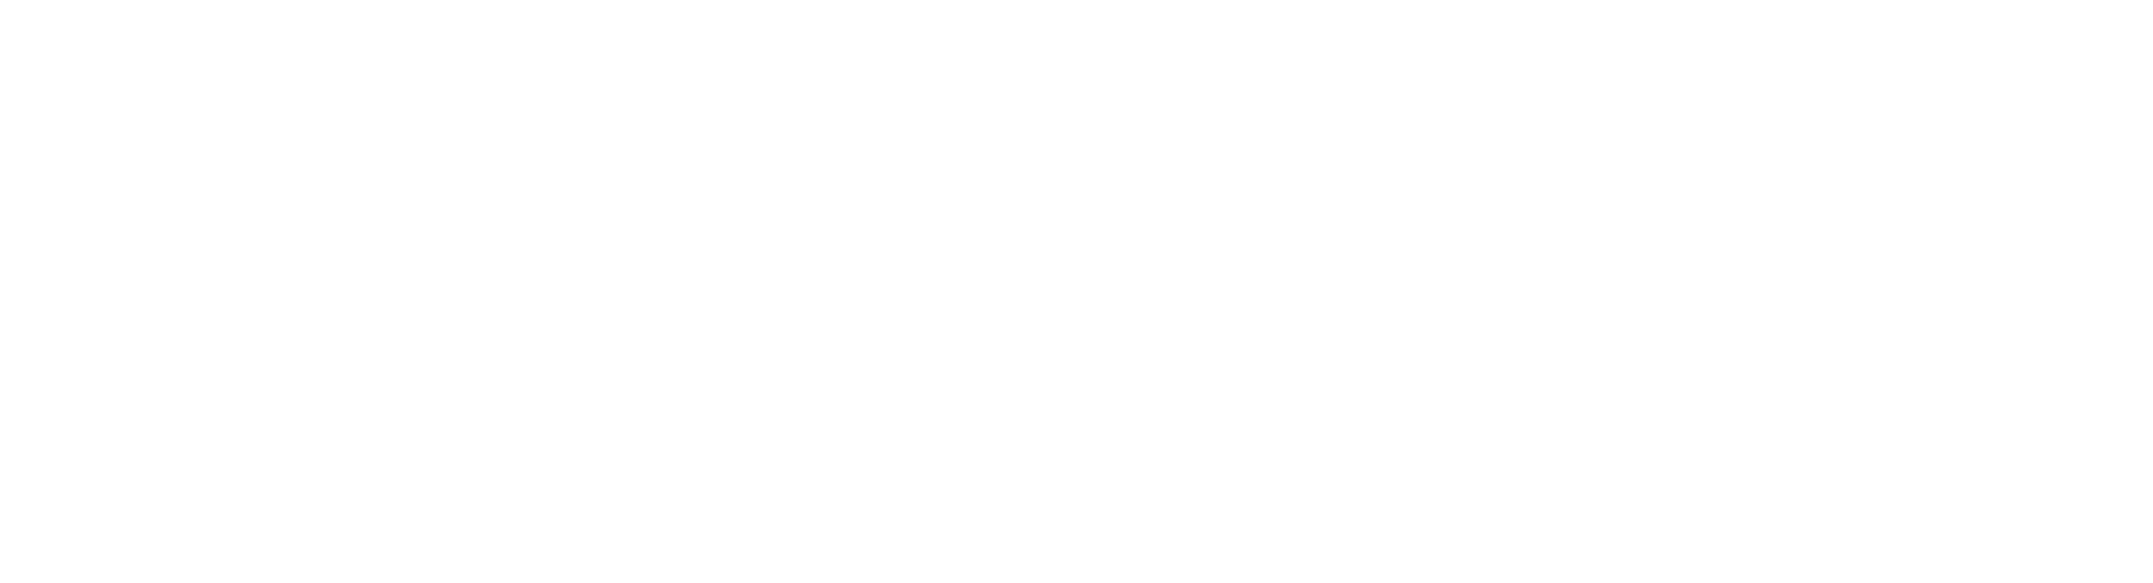 Division of Diversity, Equity, and Inclusion Logo